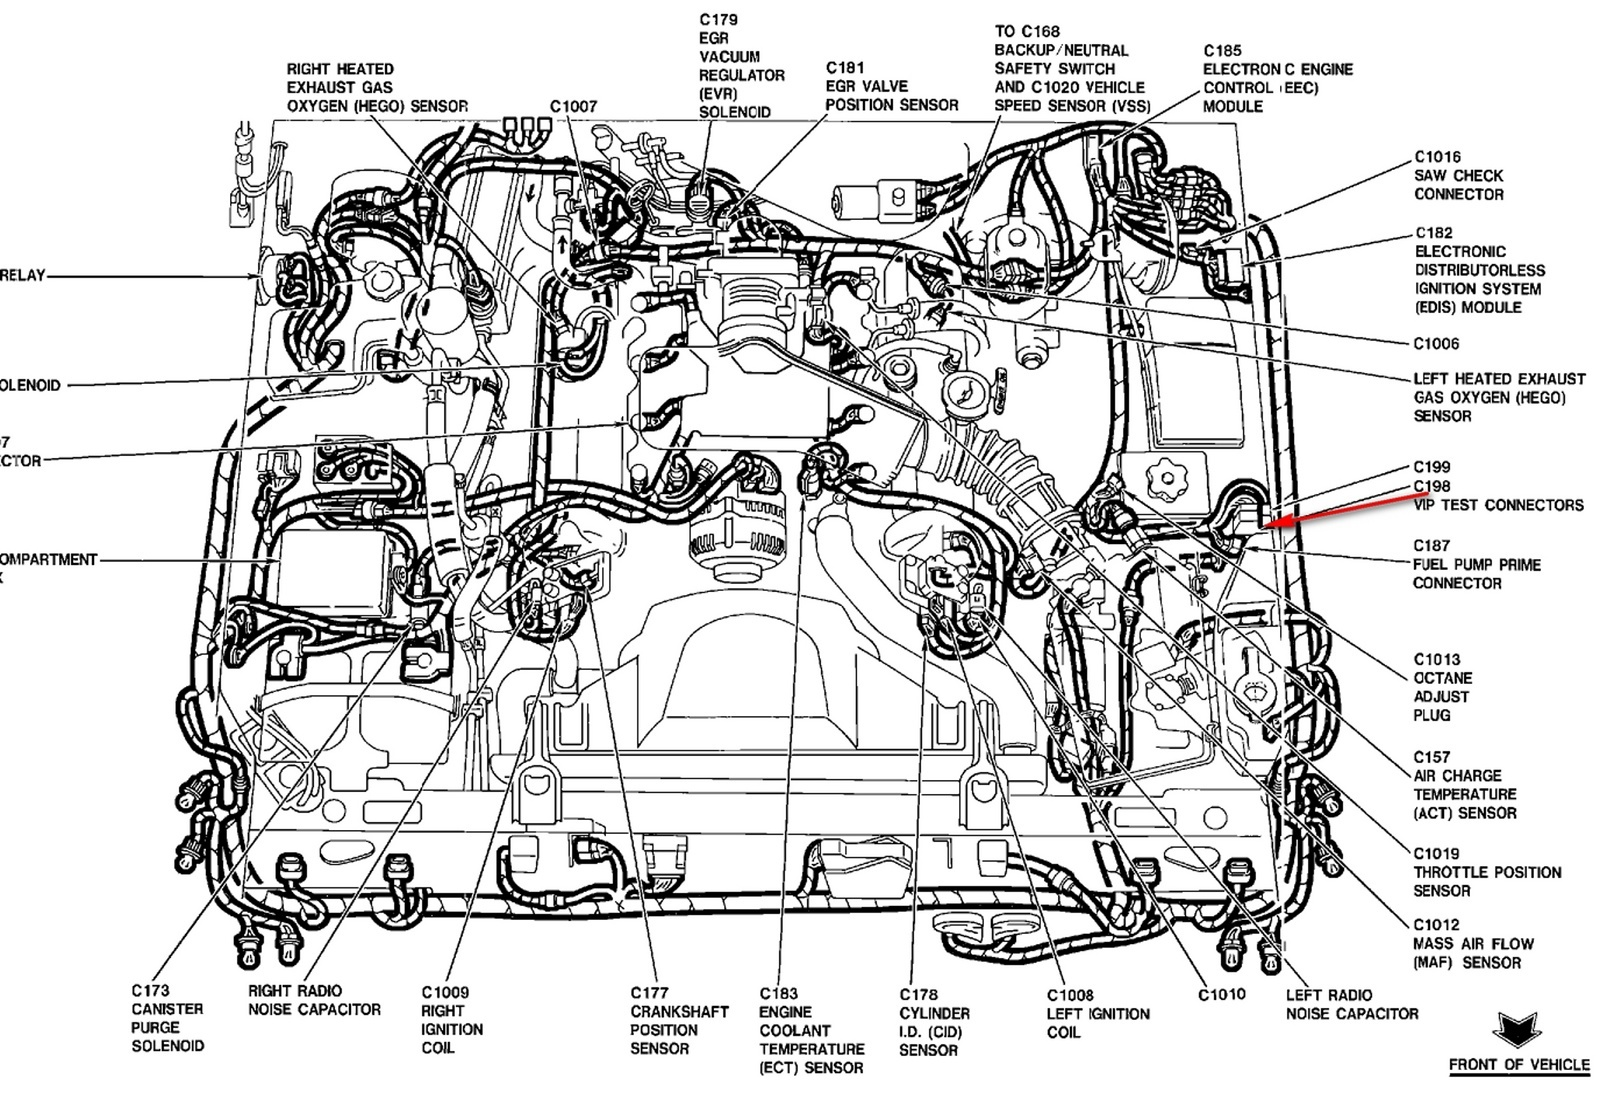 hight resolution of 1995 crown vic engine diagram wiring diagram new 2007 ford crown vic fuse diagram 1995 crown